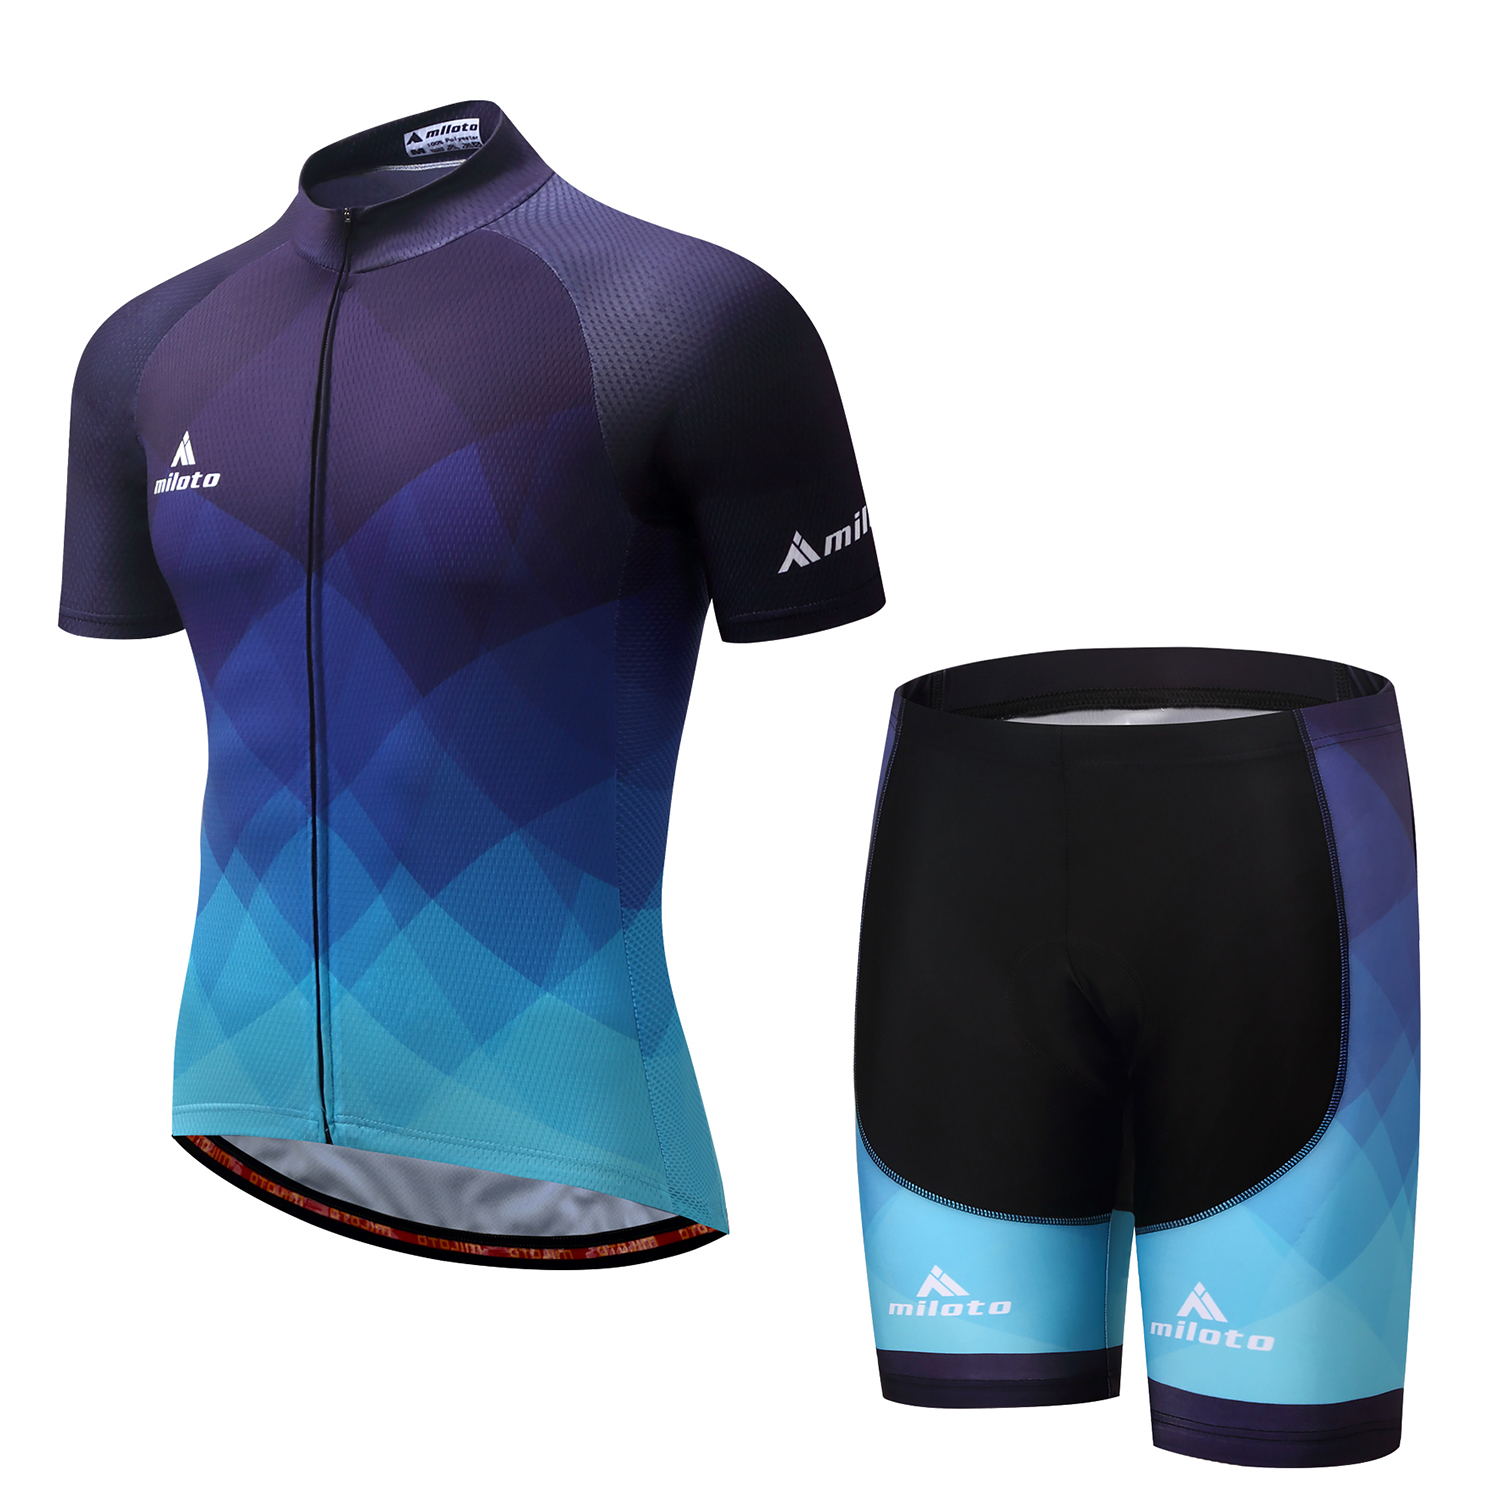 2019 Summer Men/'s Cycling Jersey Bicycle Short Sleeve T-Shirt Bike Clothing Tops